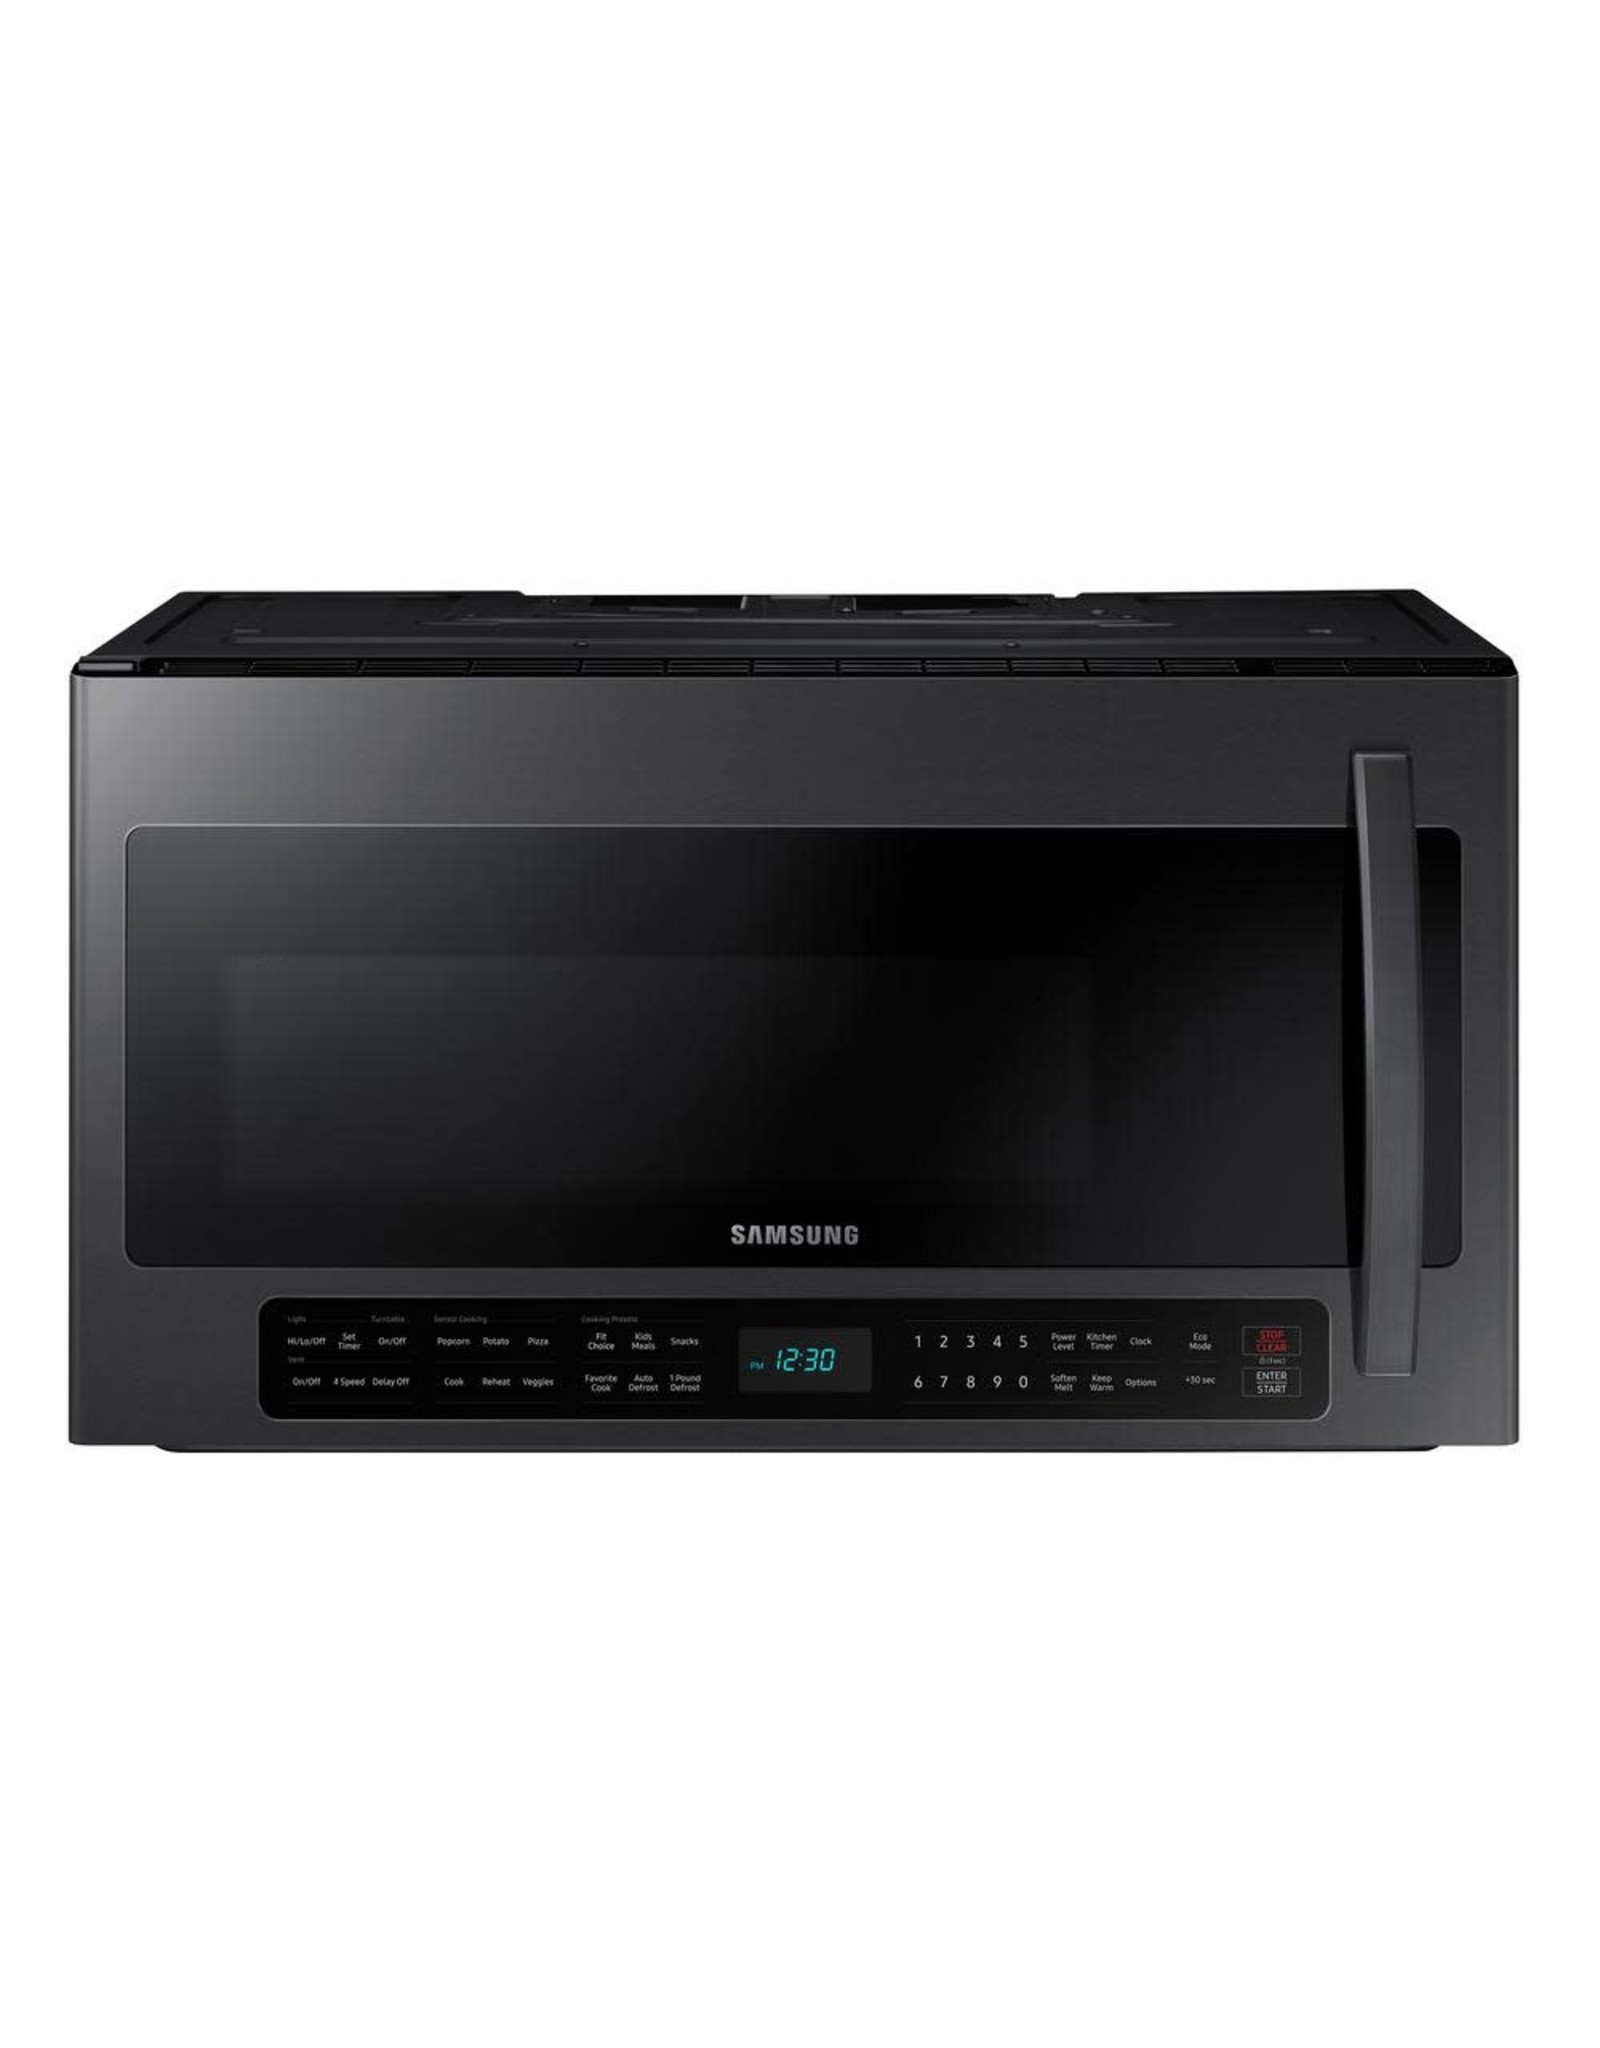 SAMSUNG ME21R7051SG Samsung 2.1 cu. ft. Over-the-Range Microwave with Sensor Cook in Black Stainless Steel